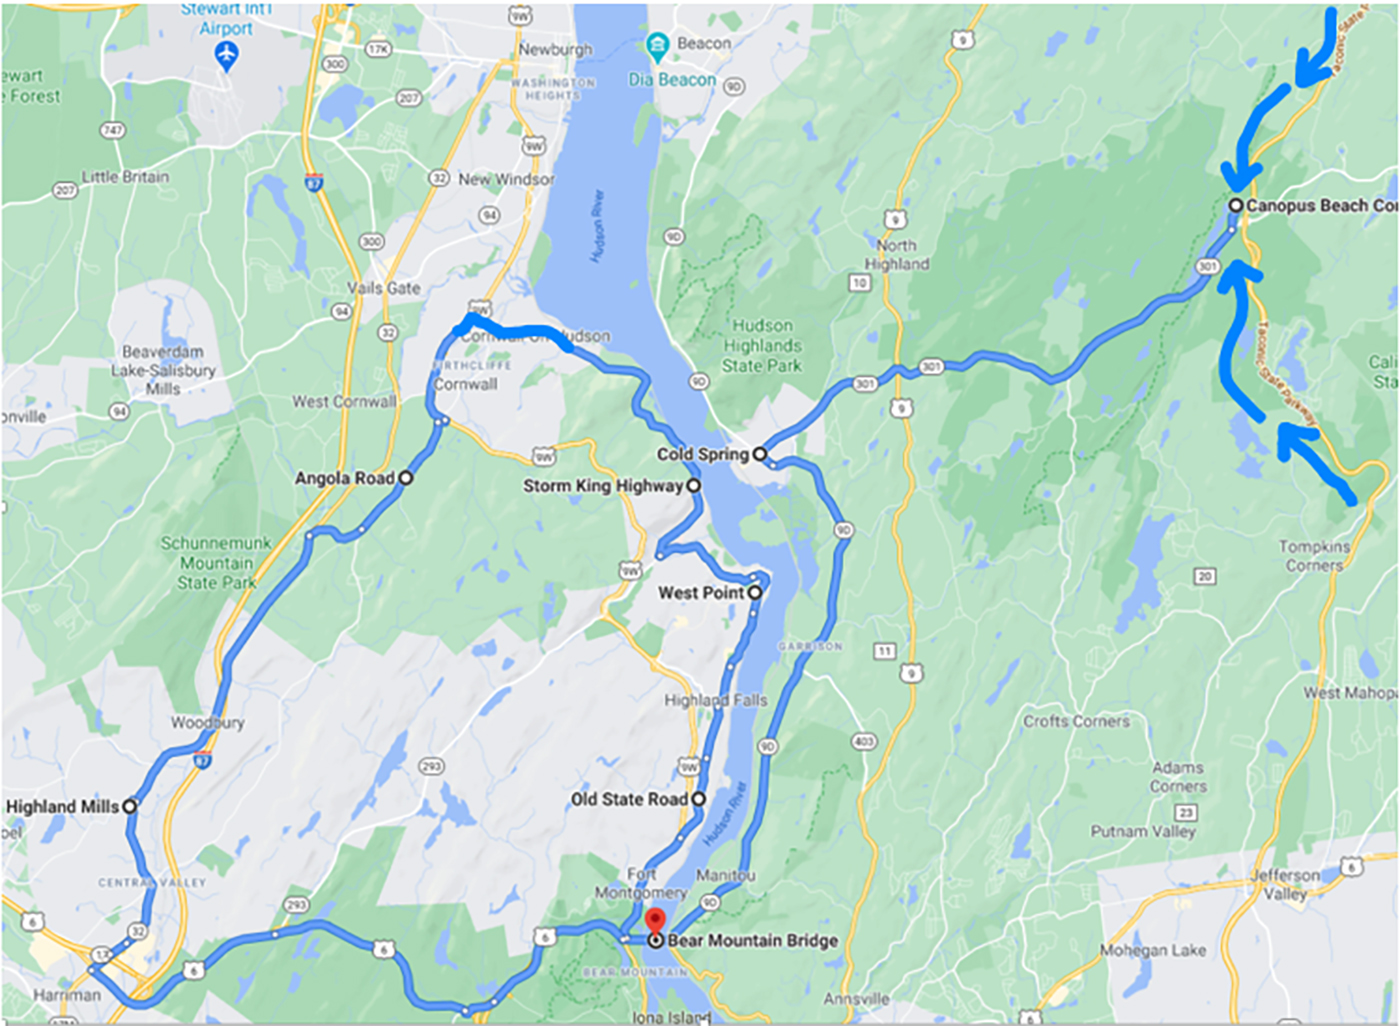 My Favorite Drive Storm King Highway, Google Driving Directions Map, Exotic Car Leasing